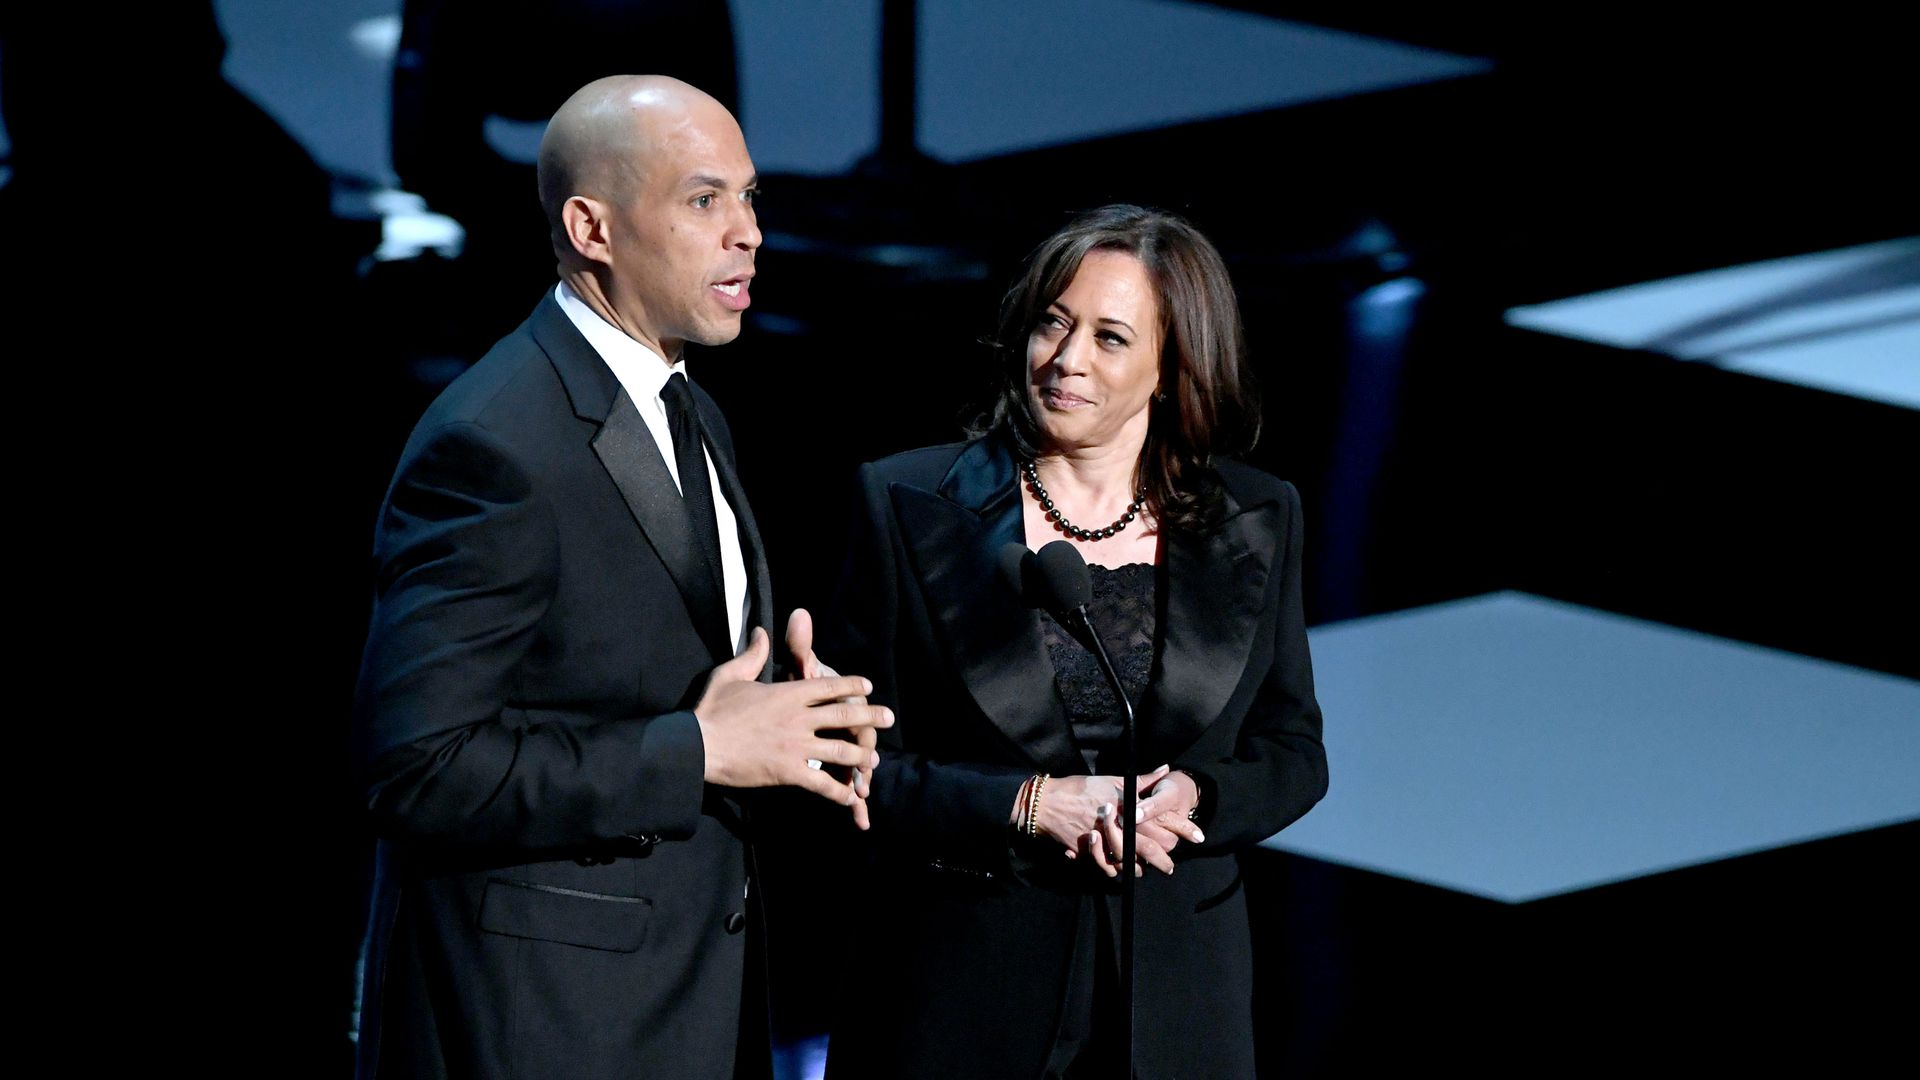 Cory Booker and Kamala Harris speak onstage at the 50th NAACP Image Awards at Dolby Theatre on March 30, 2019 in Hollywood